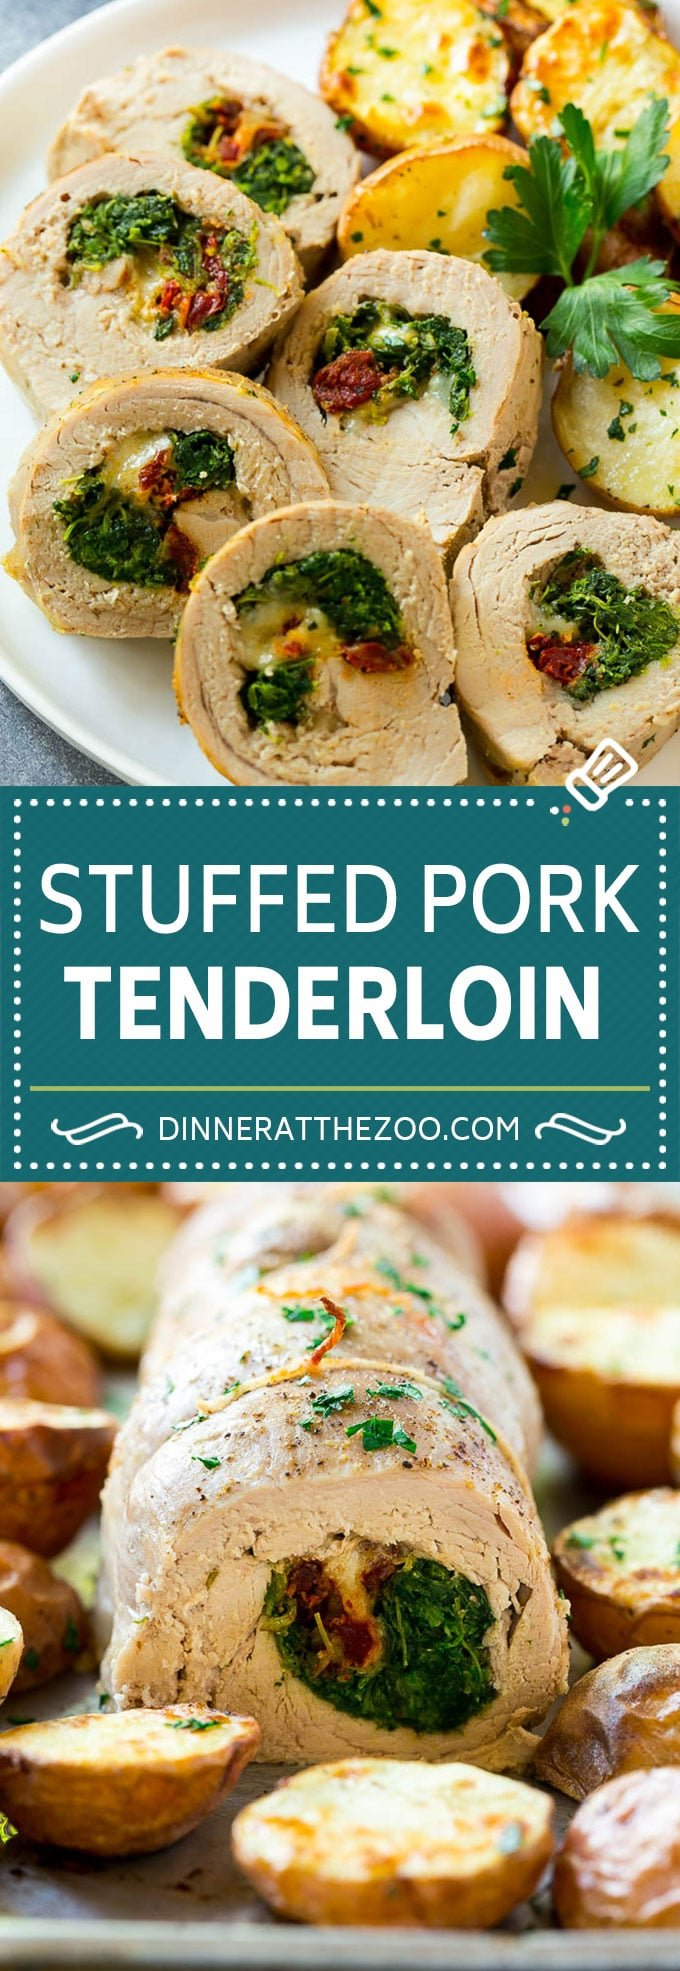 Stuffed Pork Tenderloin Recipe | Roasted Pork Tenderloin | Italian Pork #pork #onepan #potatoes #dinner #dinneratthezoo #glutenfree